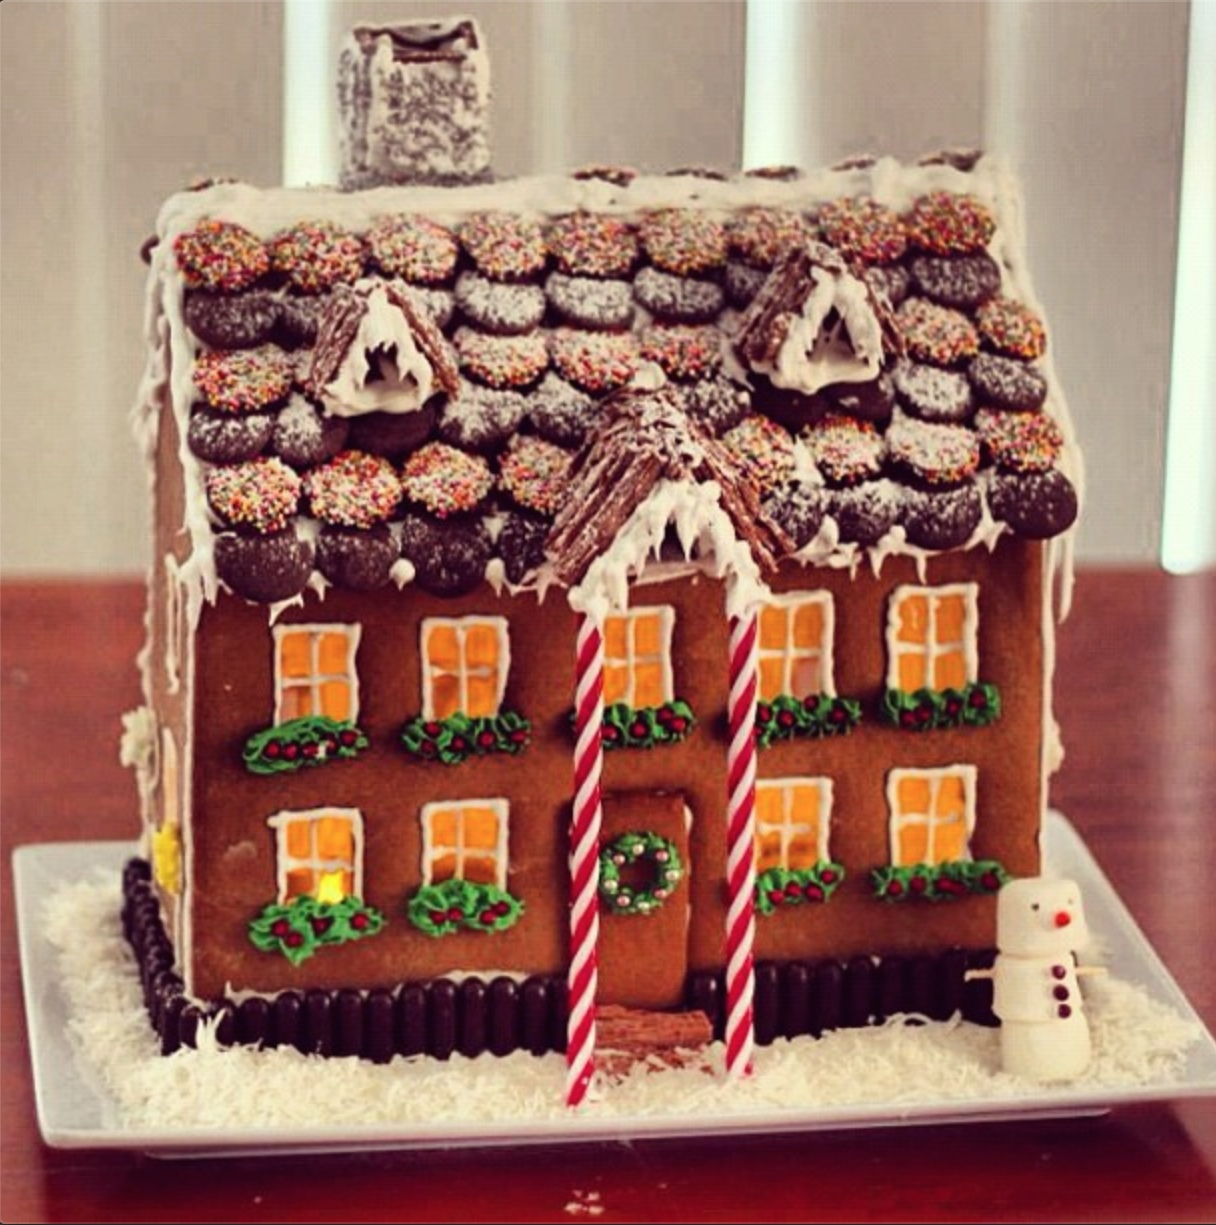 Home Decorating Diy The Thud Gingerbread House Template The Thud